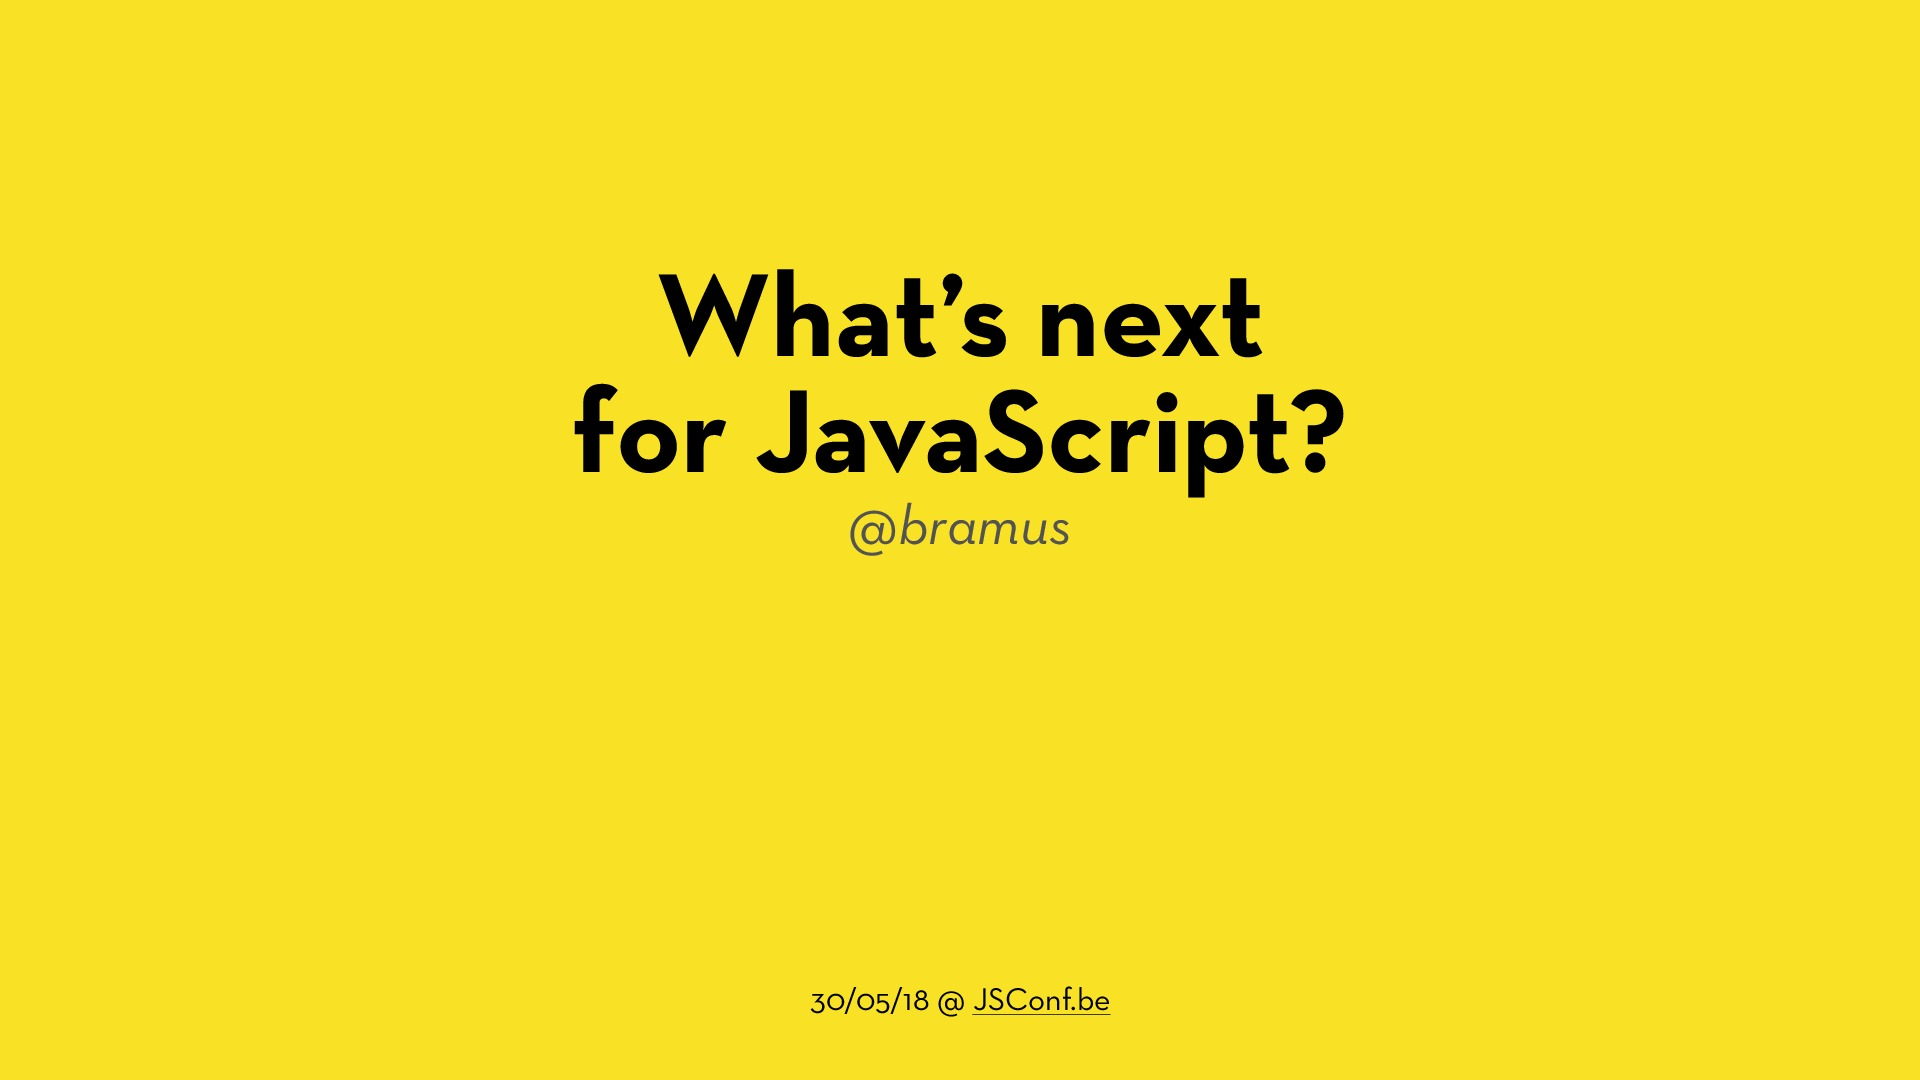 What's next for JavaScript? (2018.05.30 @ JSConf.be)